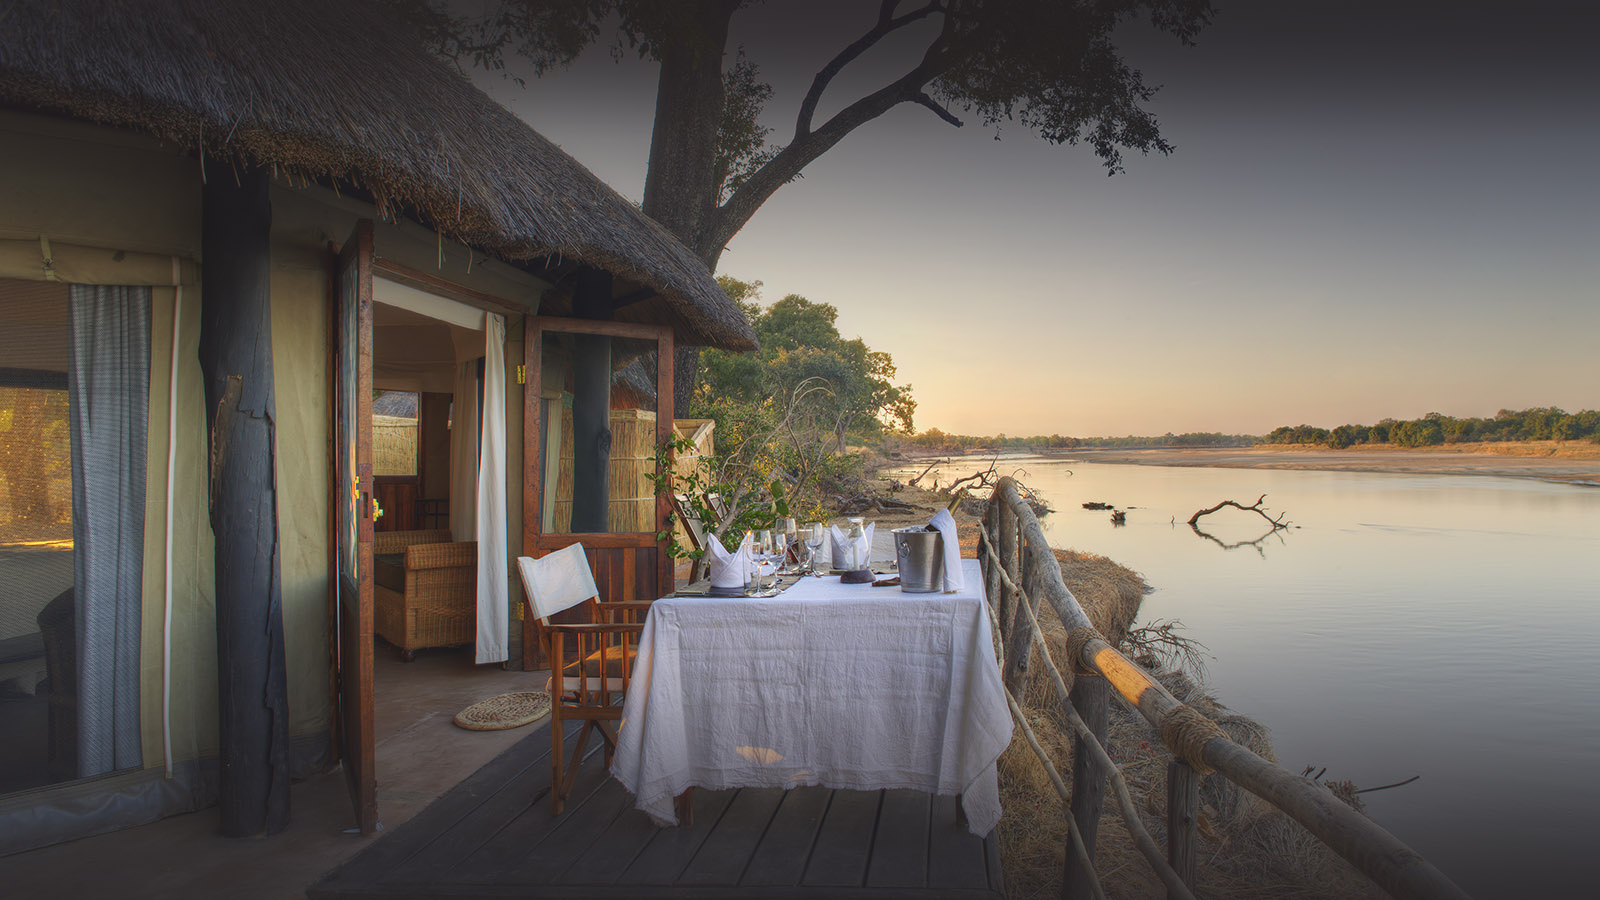 mchenja-bush-camp-lodge-zambia-in-style-tours-safari-packages-lodges-south-luangwa-national-park-dining-day